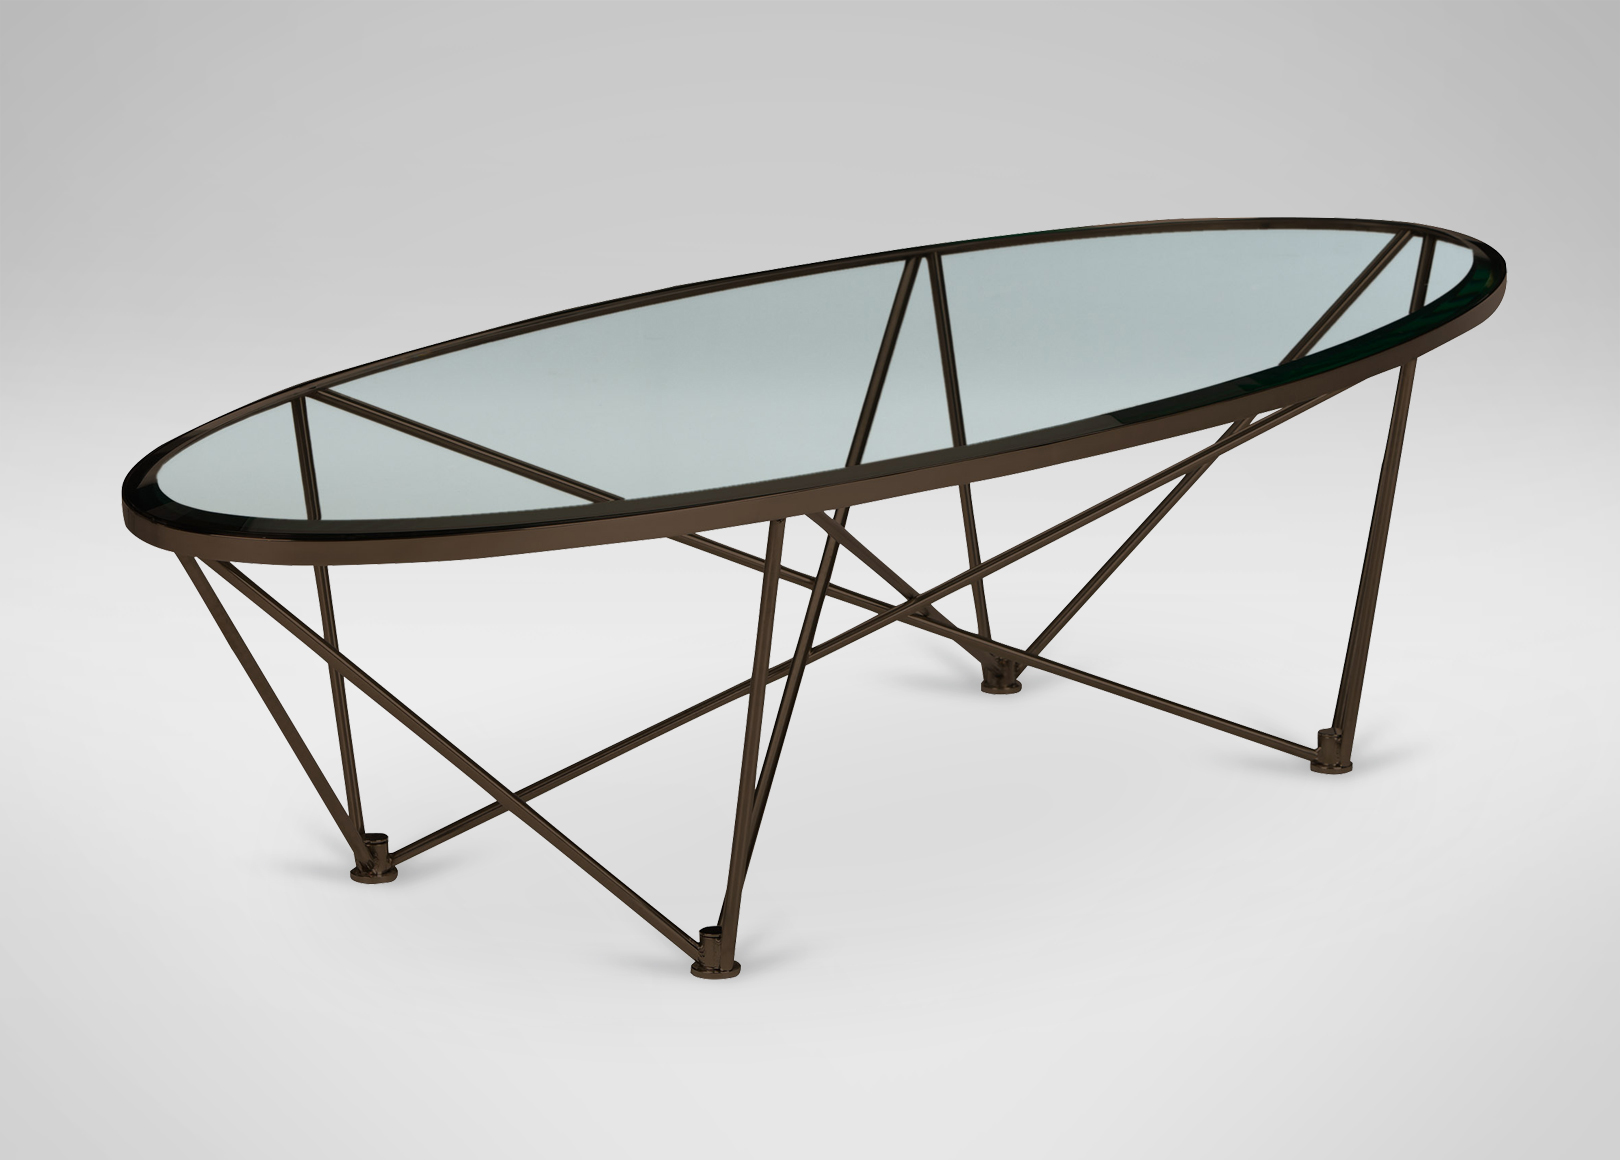 Images Kestral Oval Coffee Table, Vintage Steel , , Large_gray